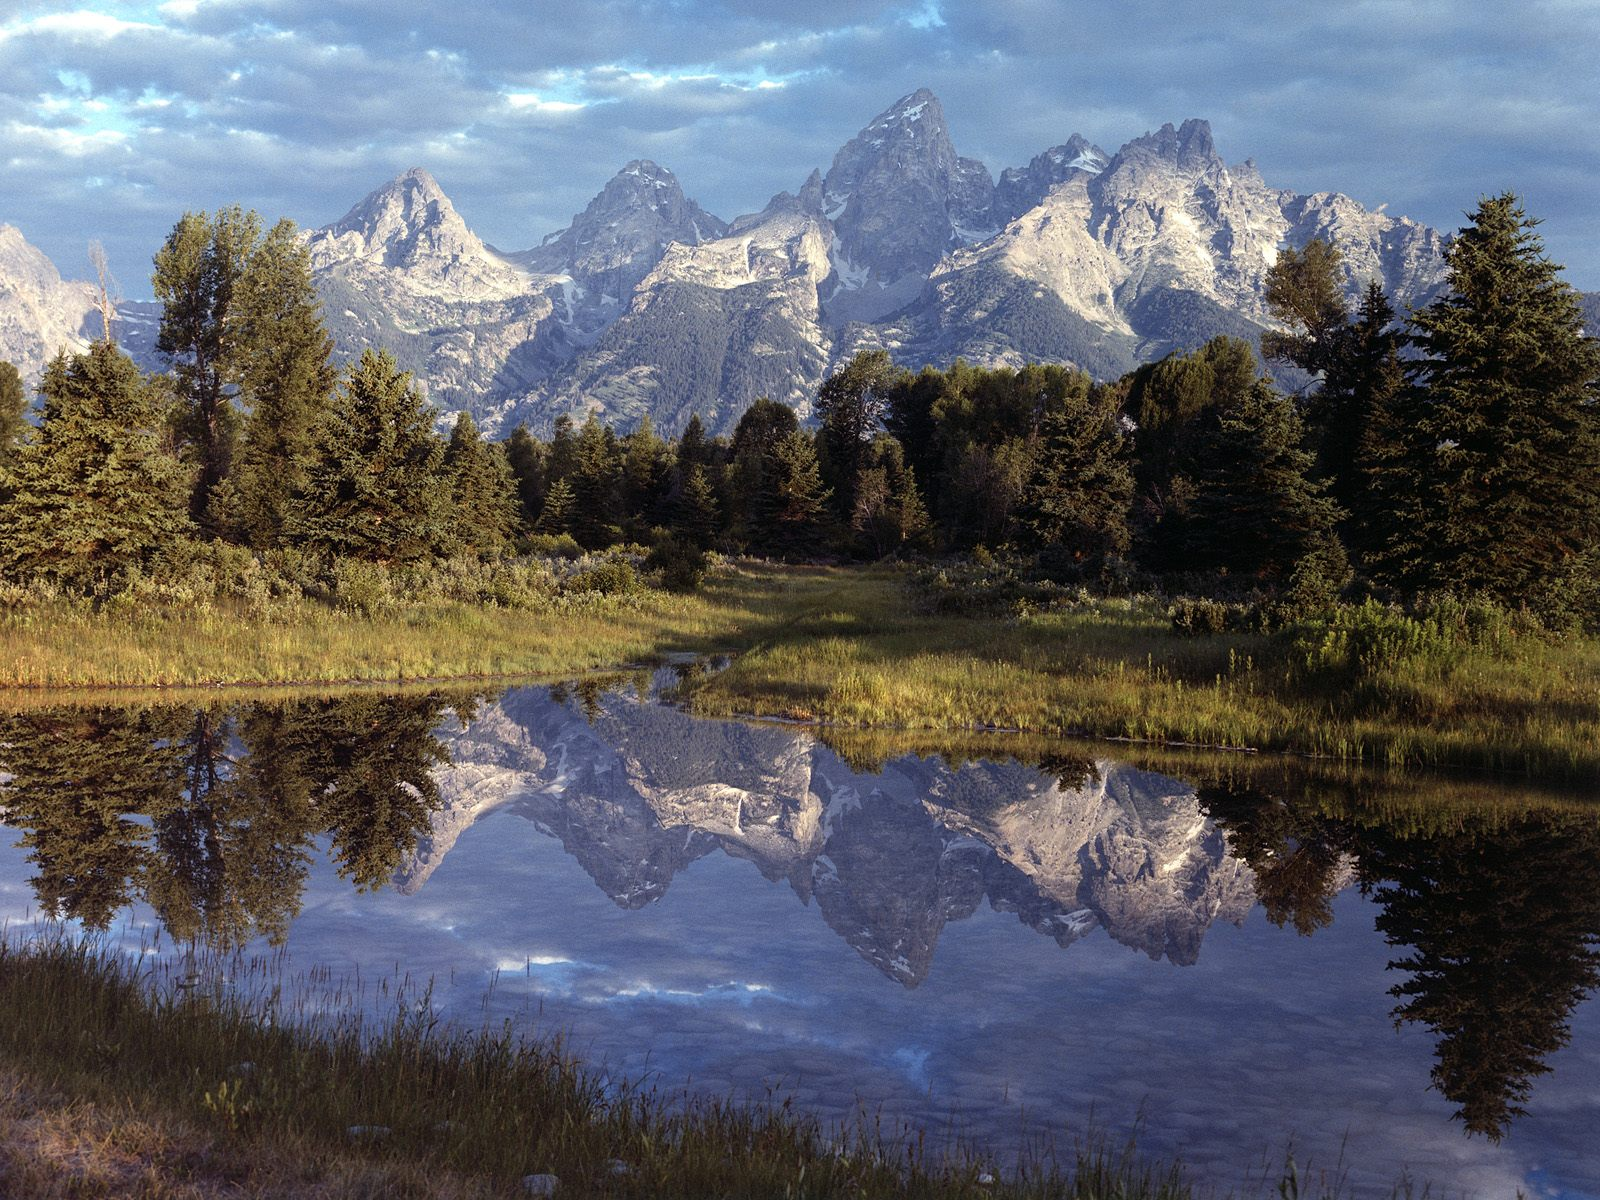 Grand Teton Reflections, Yellowstone Wallpaper – 1600 x 1200 pixels – 483 kB